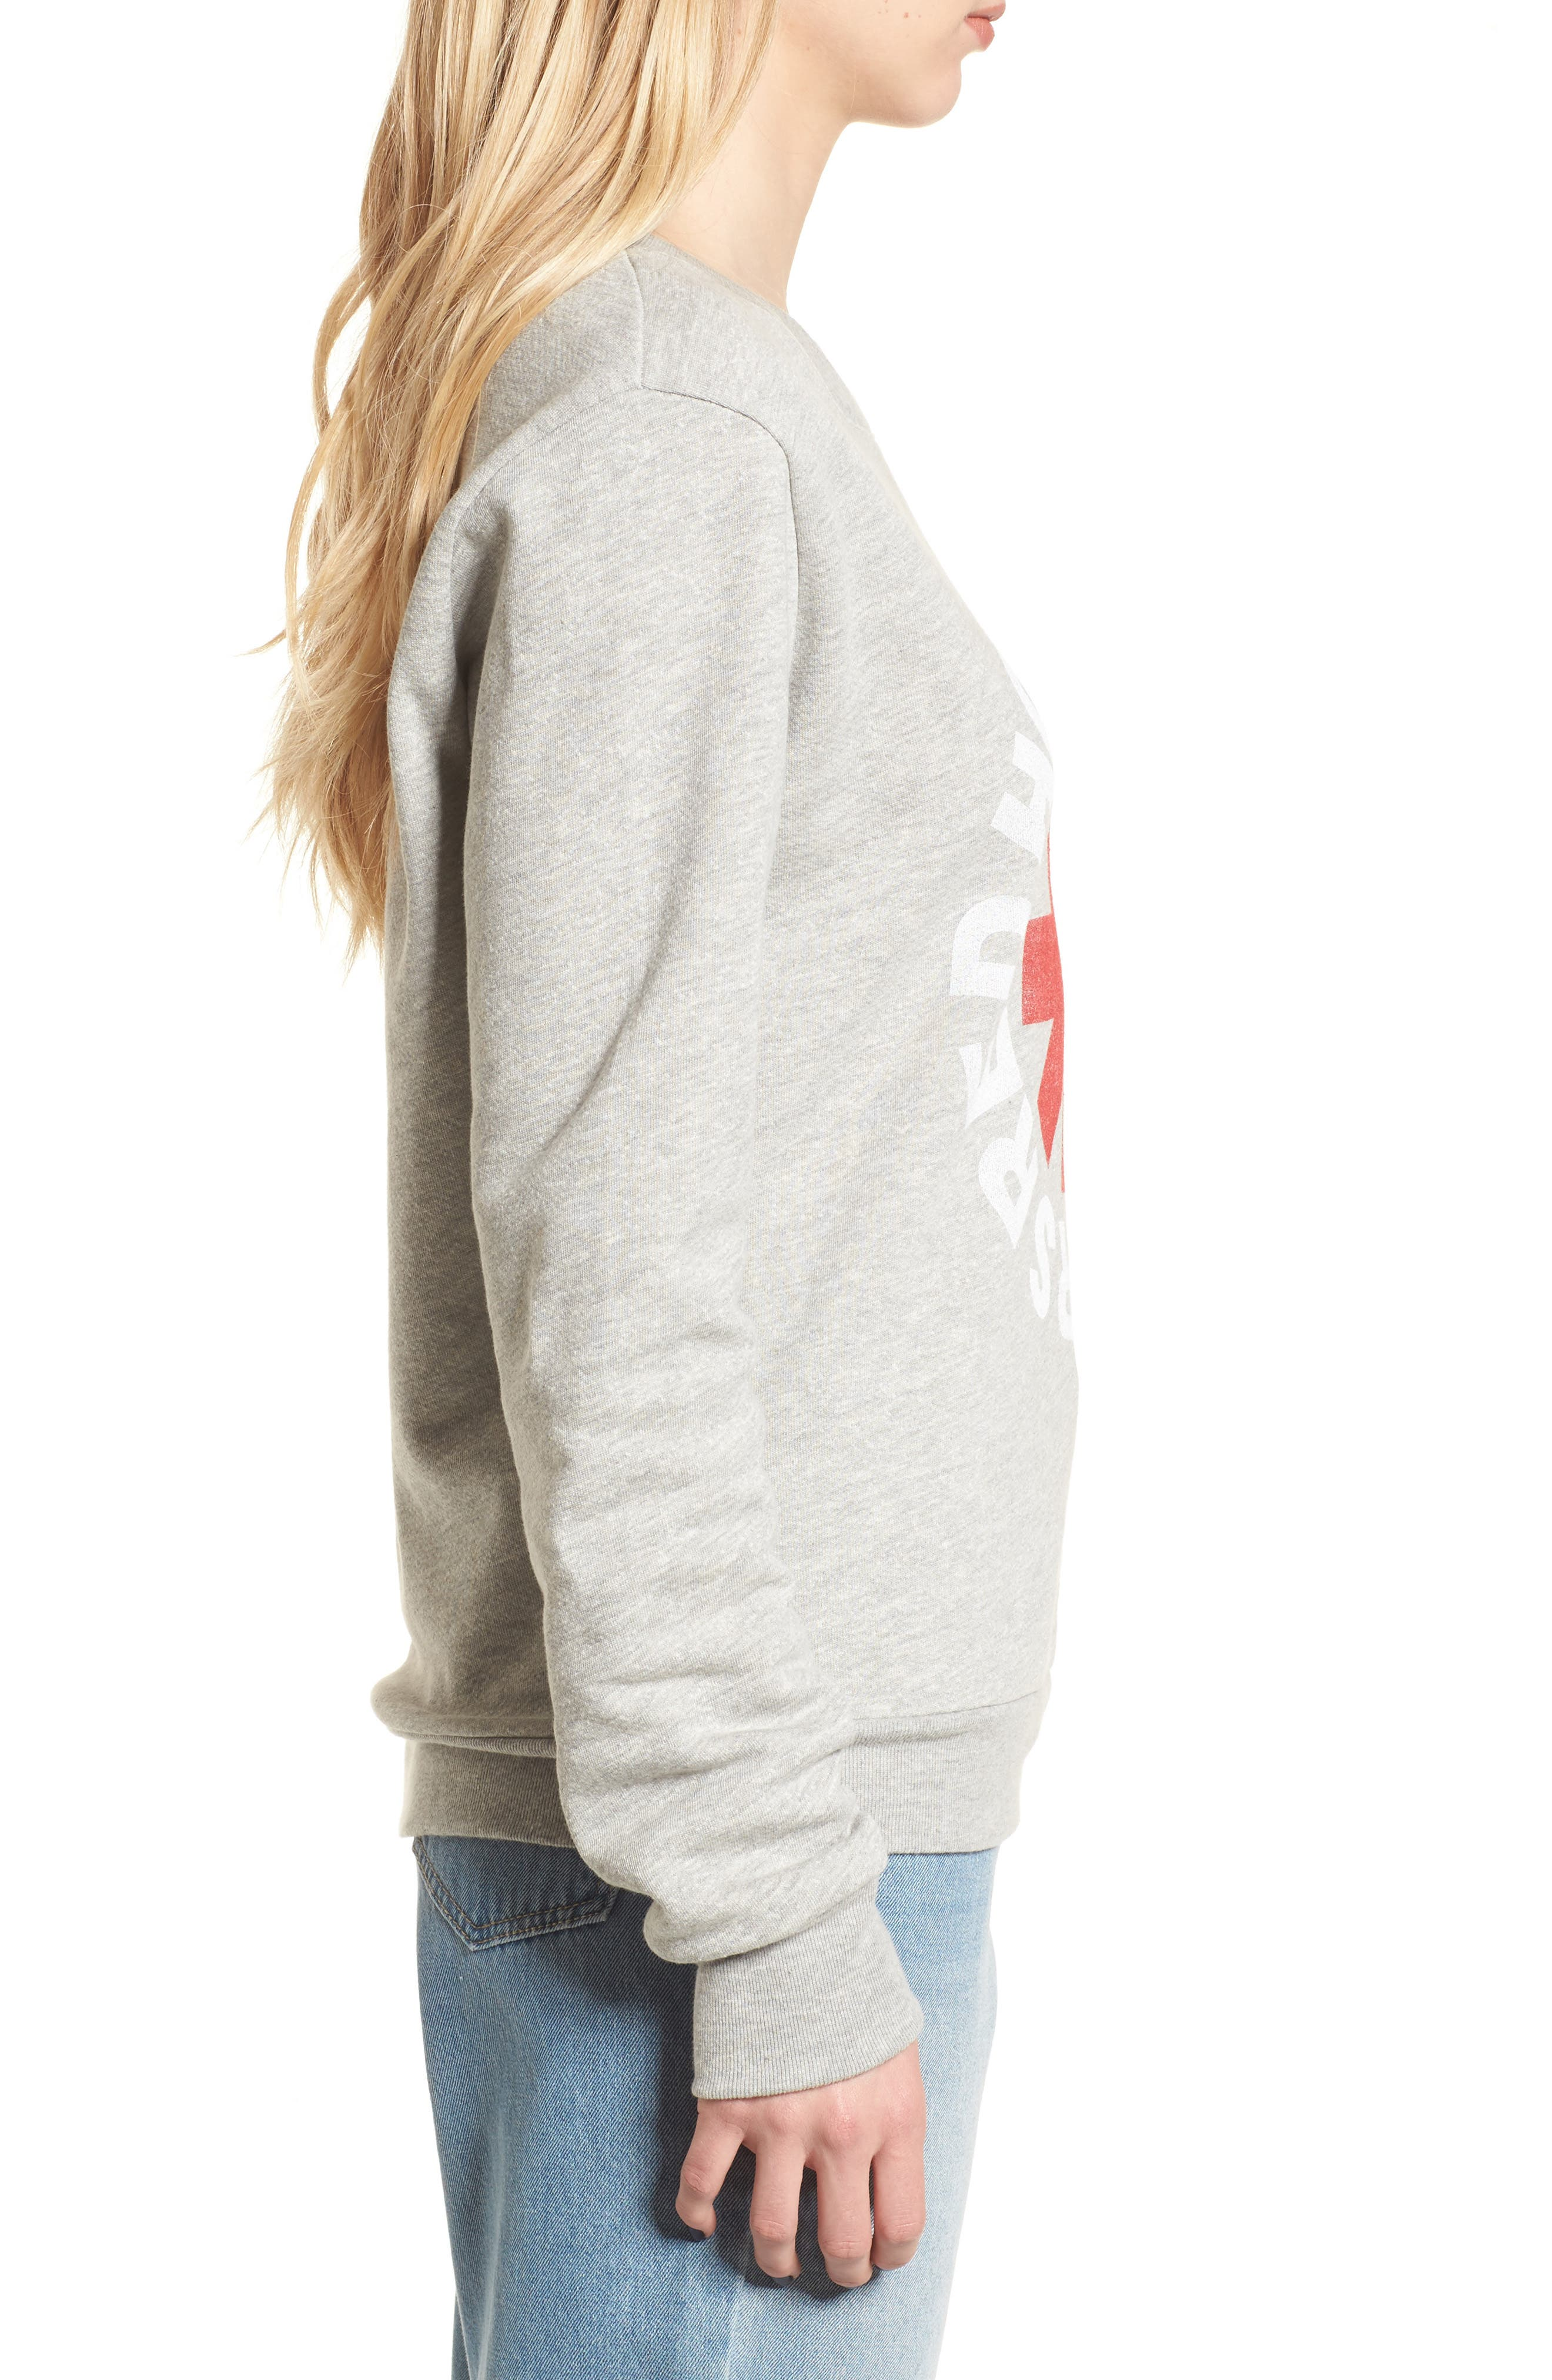 Red Hot Chili Peppers Sweatshirt,                             Alternate thumbnail 3, color,                             Heather Grey